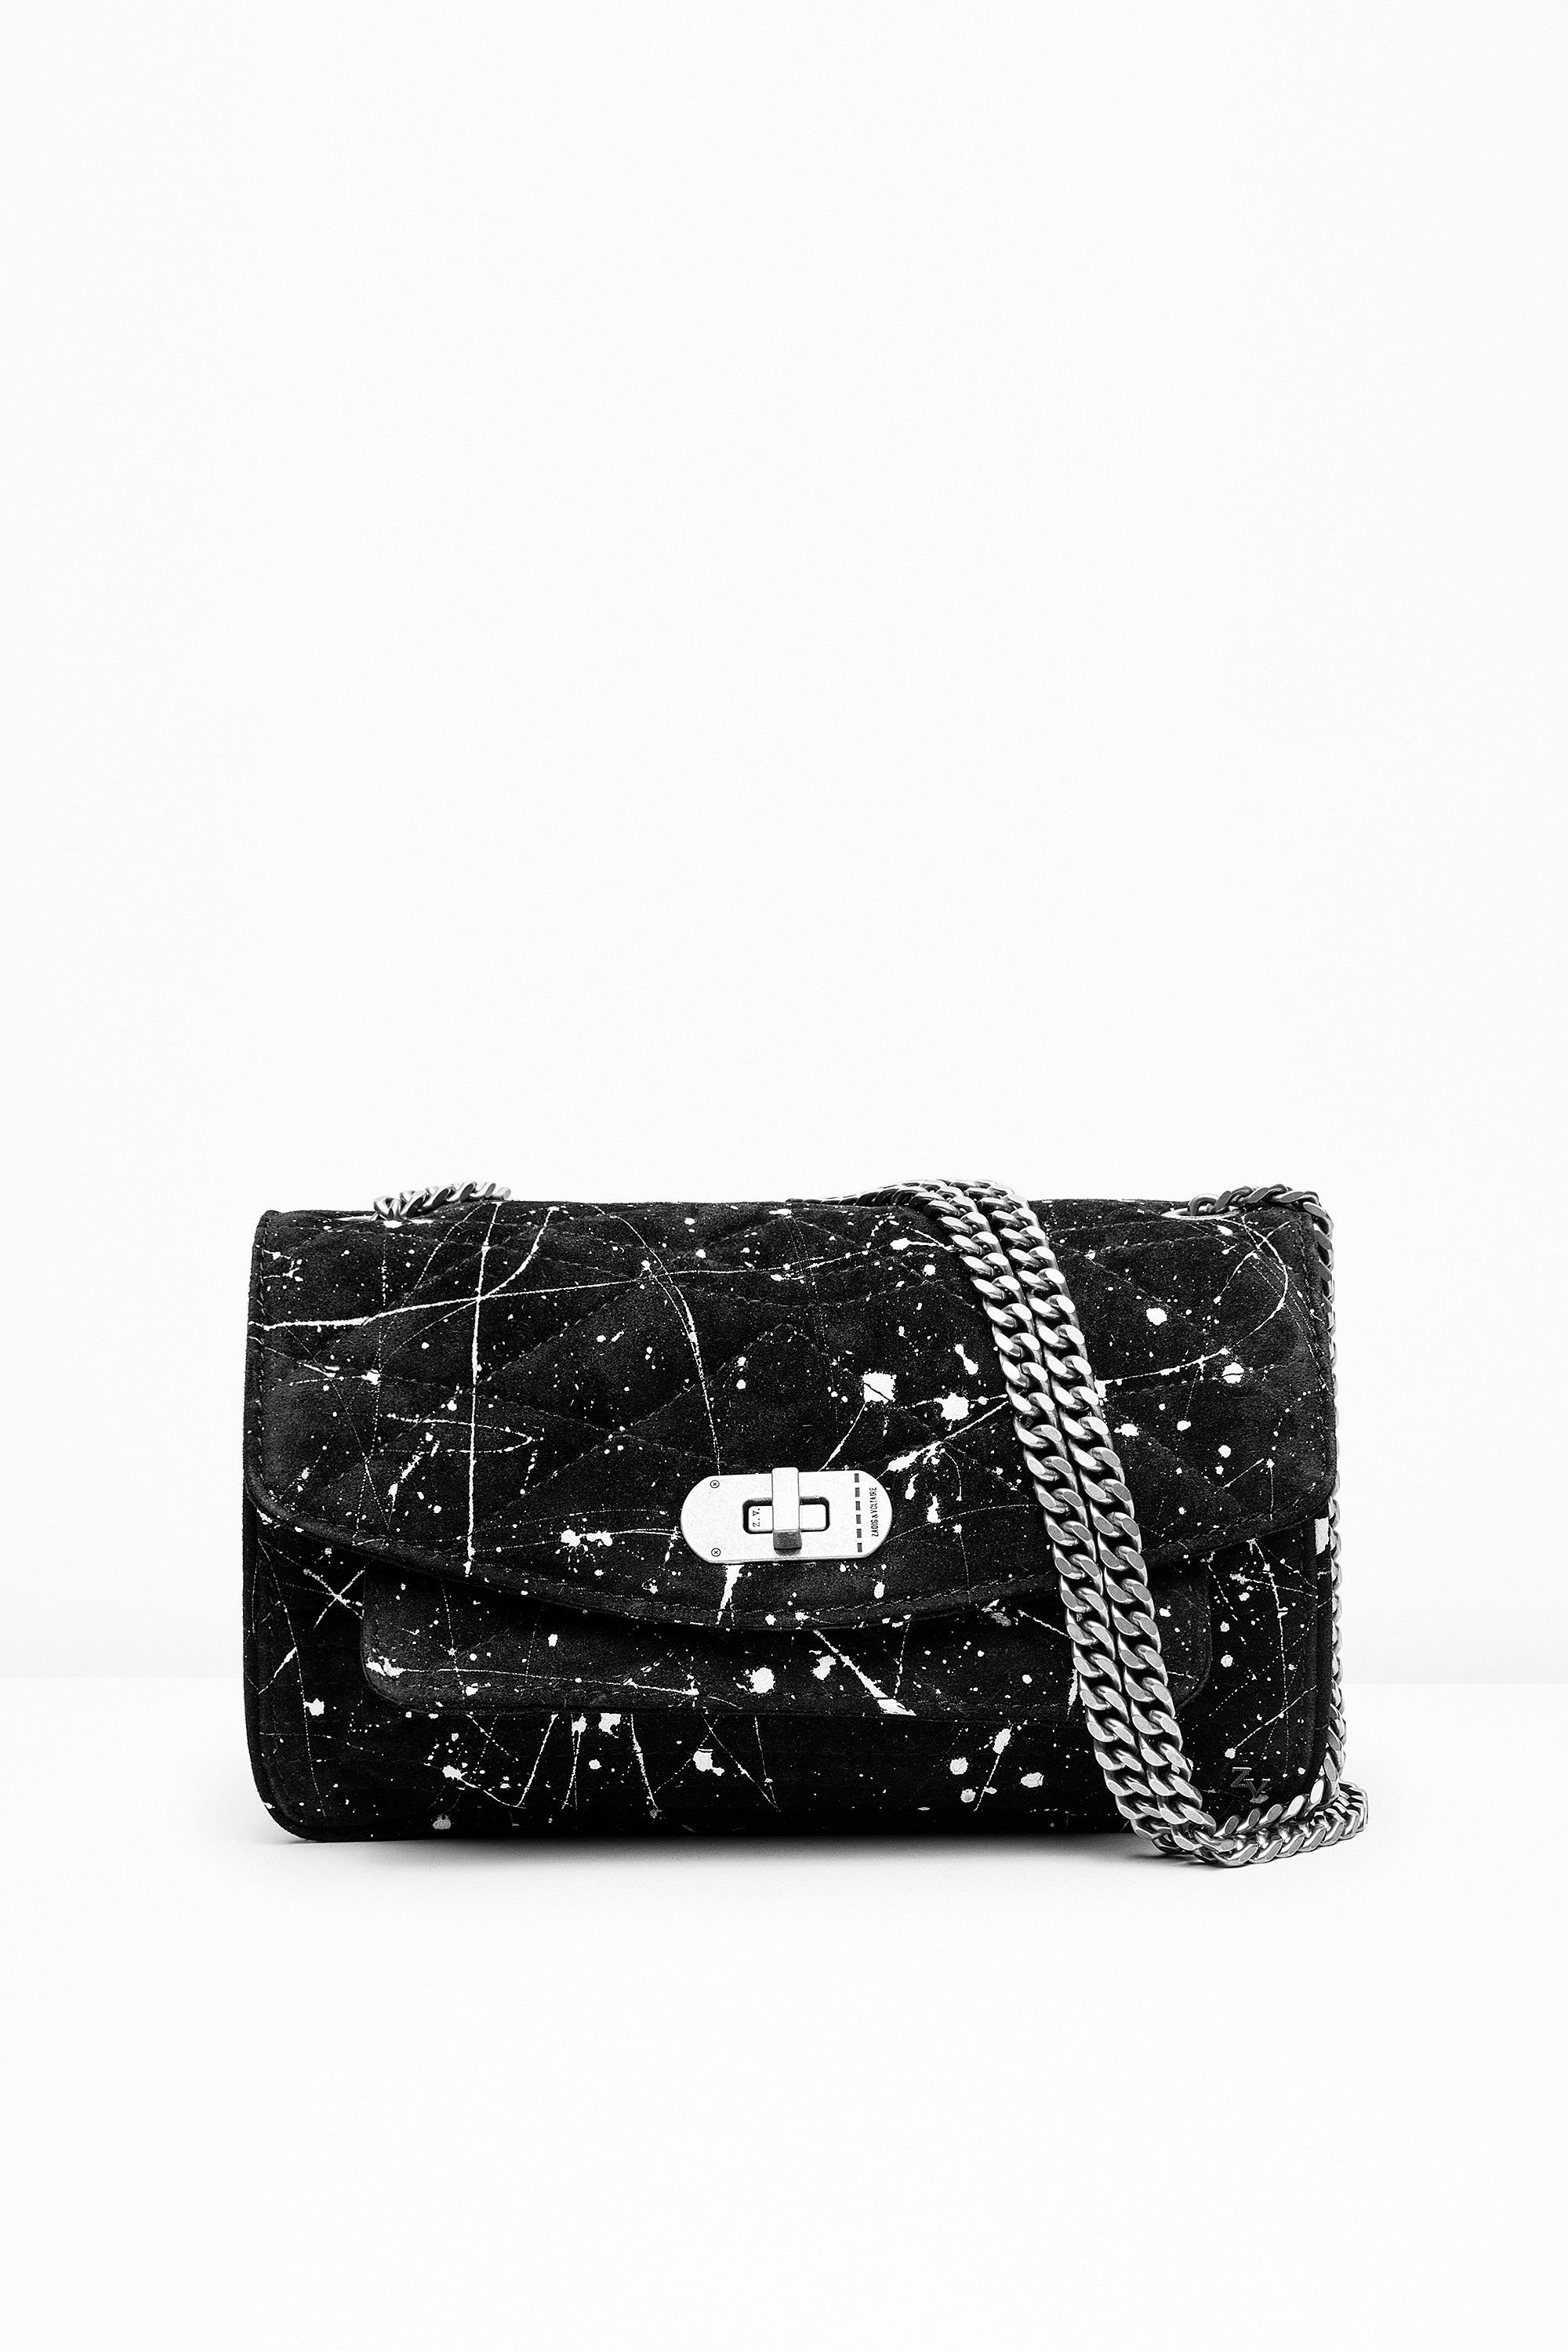 """bb317094597c Zadig & Voltaire bag, chain strap, can be worn cross body or on the  shoulder, ZV rivet and military clasp, engraved eyelets,  6.5x18x26cm/2.3x7x10.2"""", ..."""